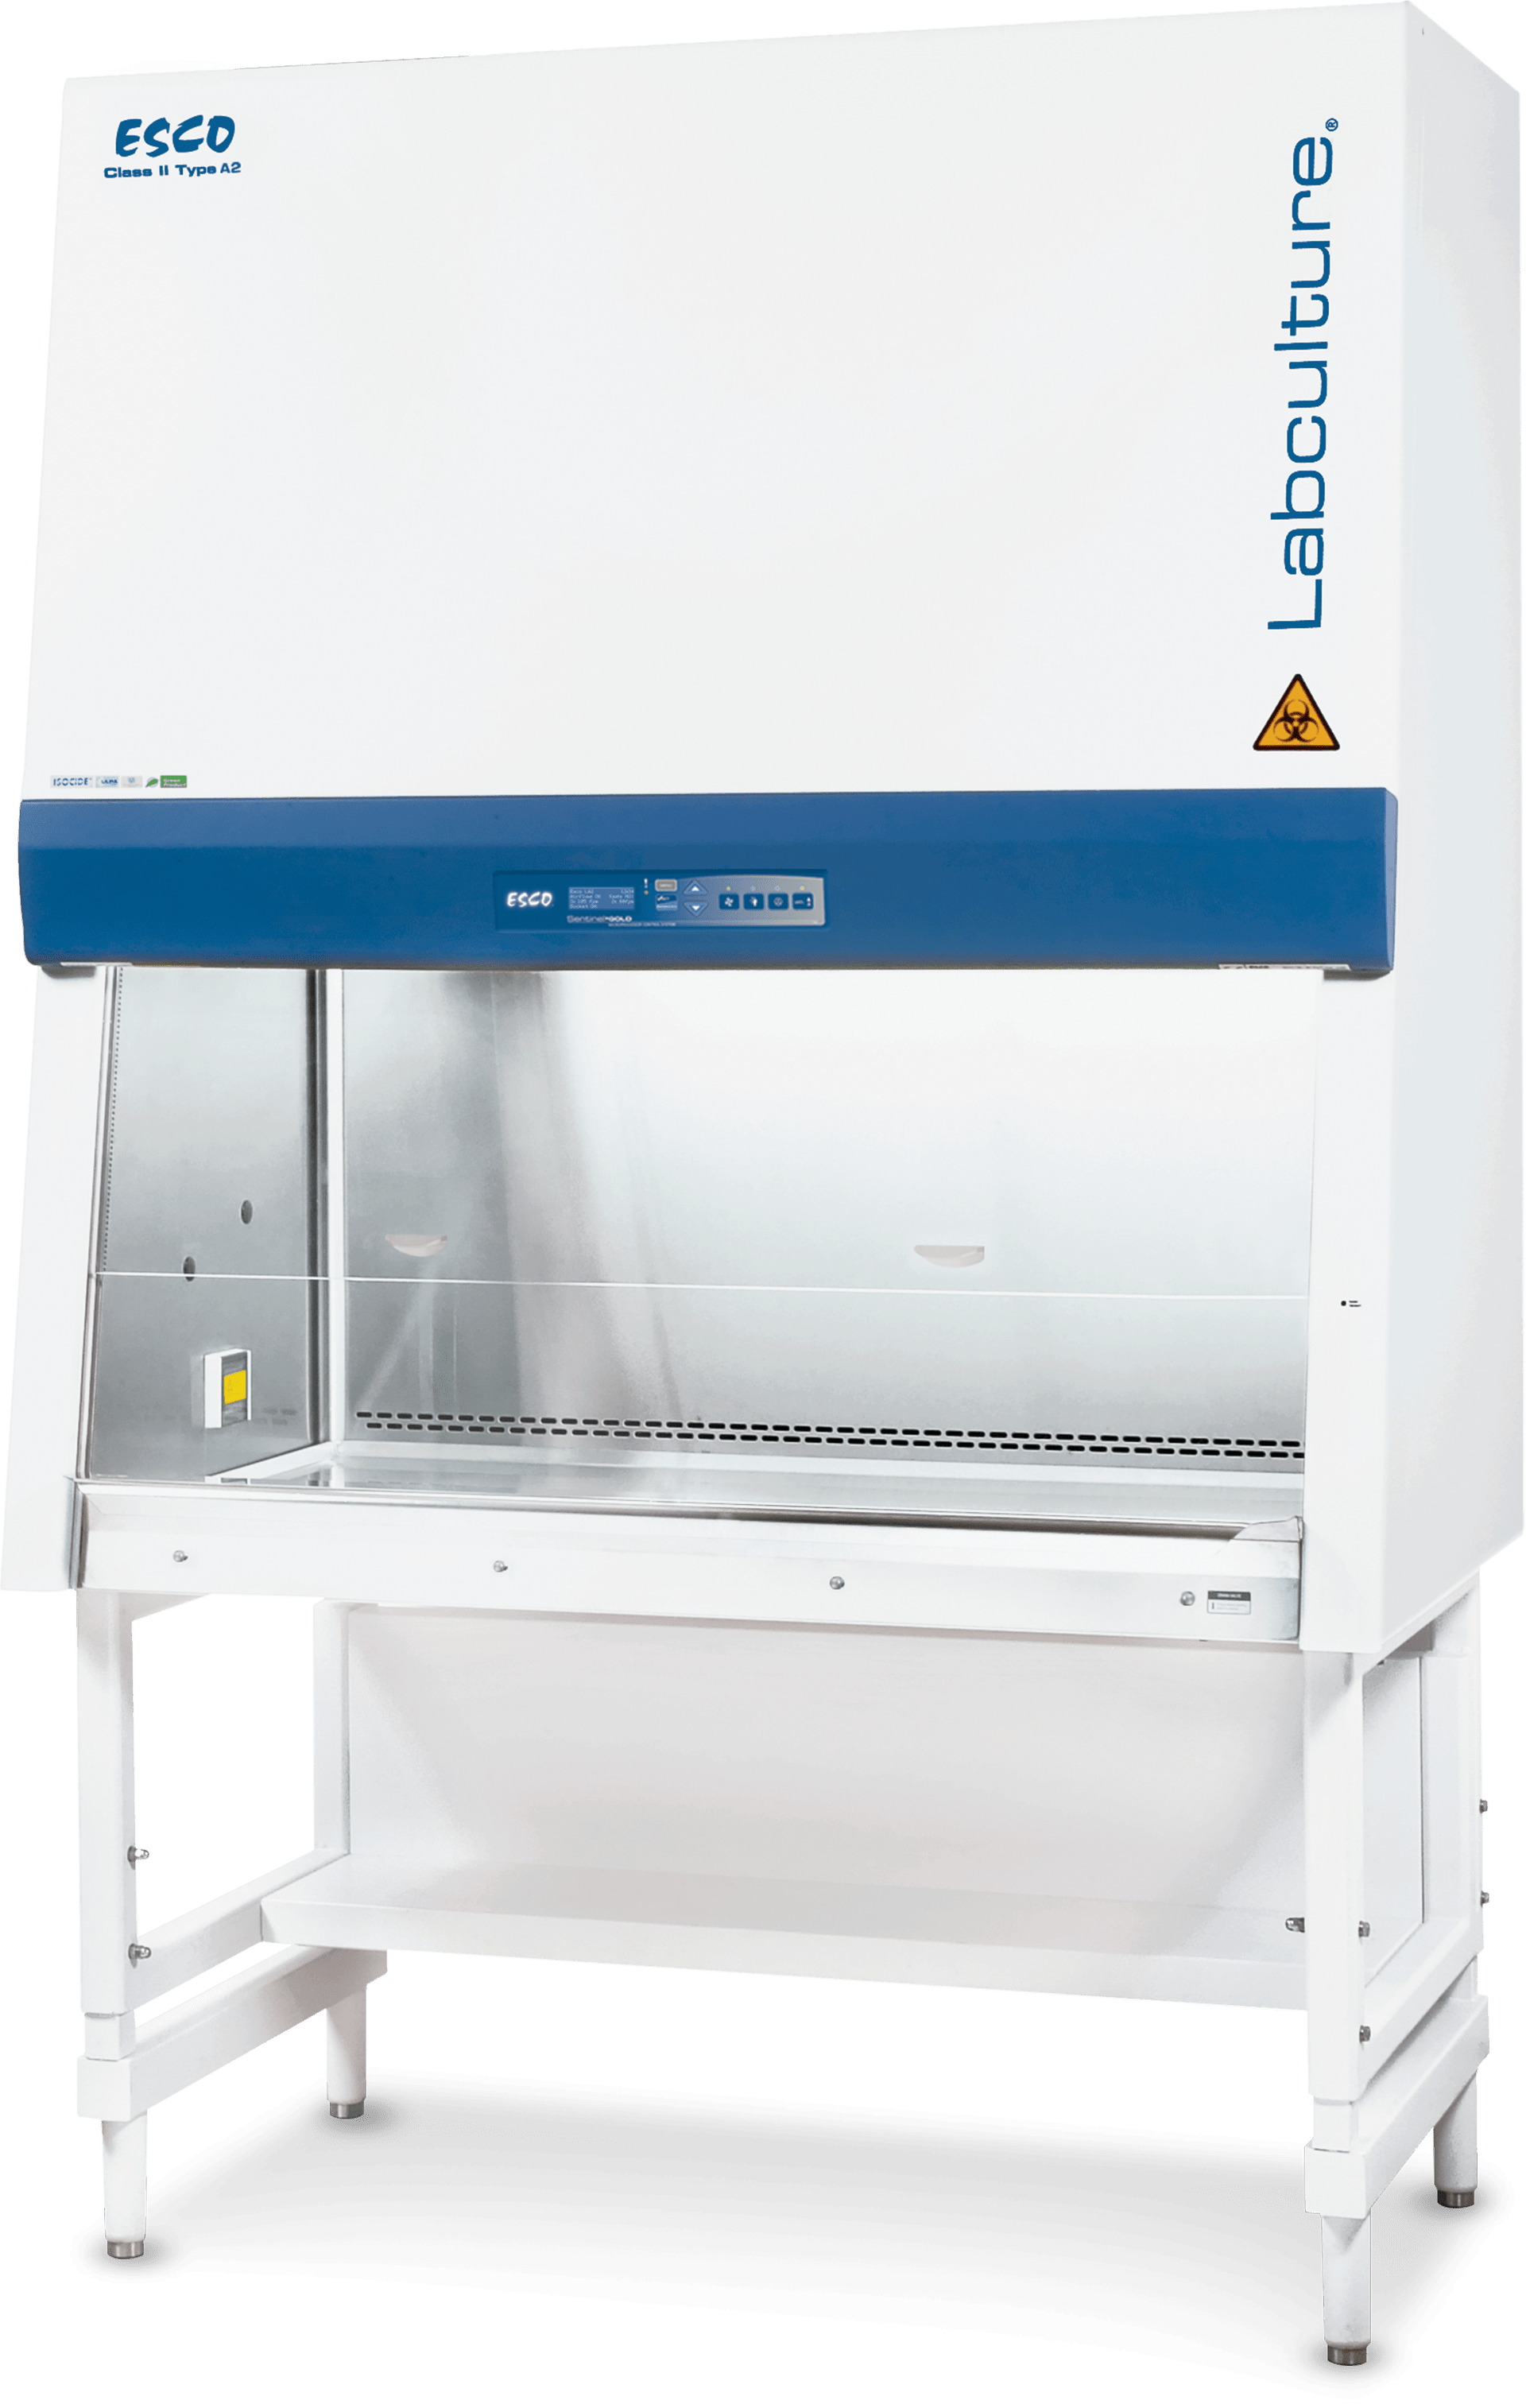 Esco wins order from Wistar Institute to supply Biological Safety Cabinets